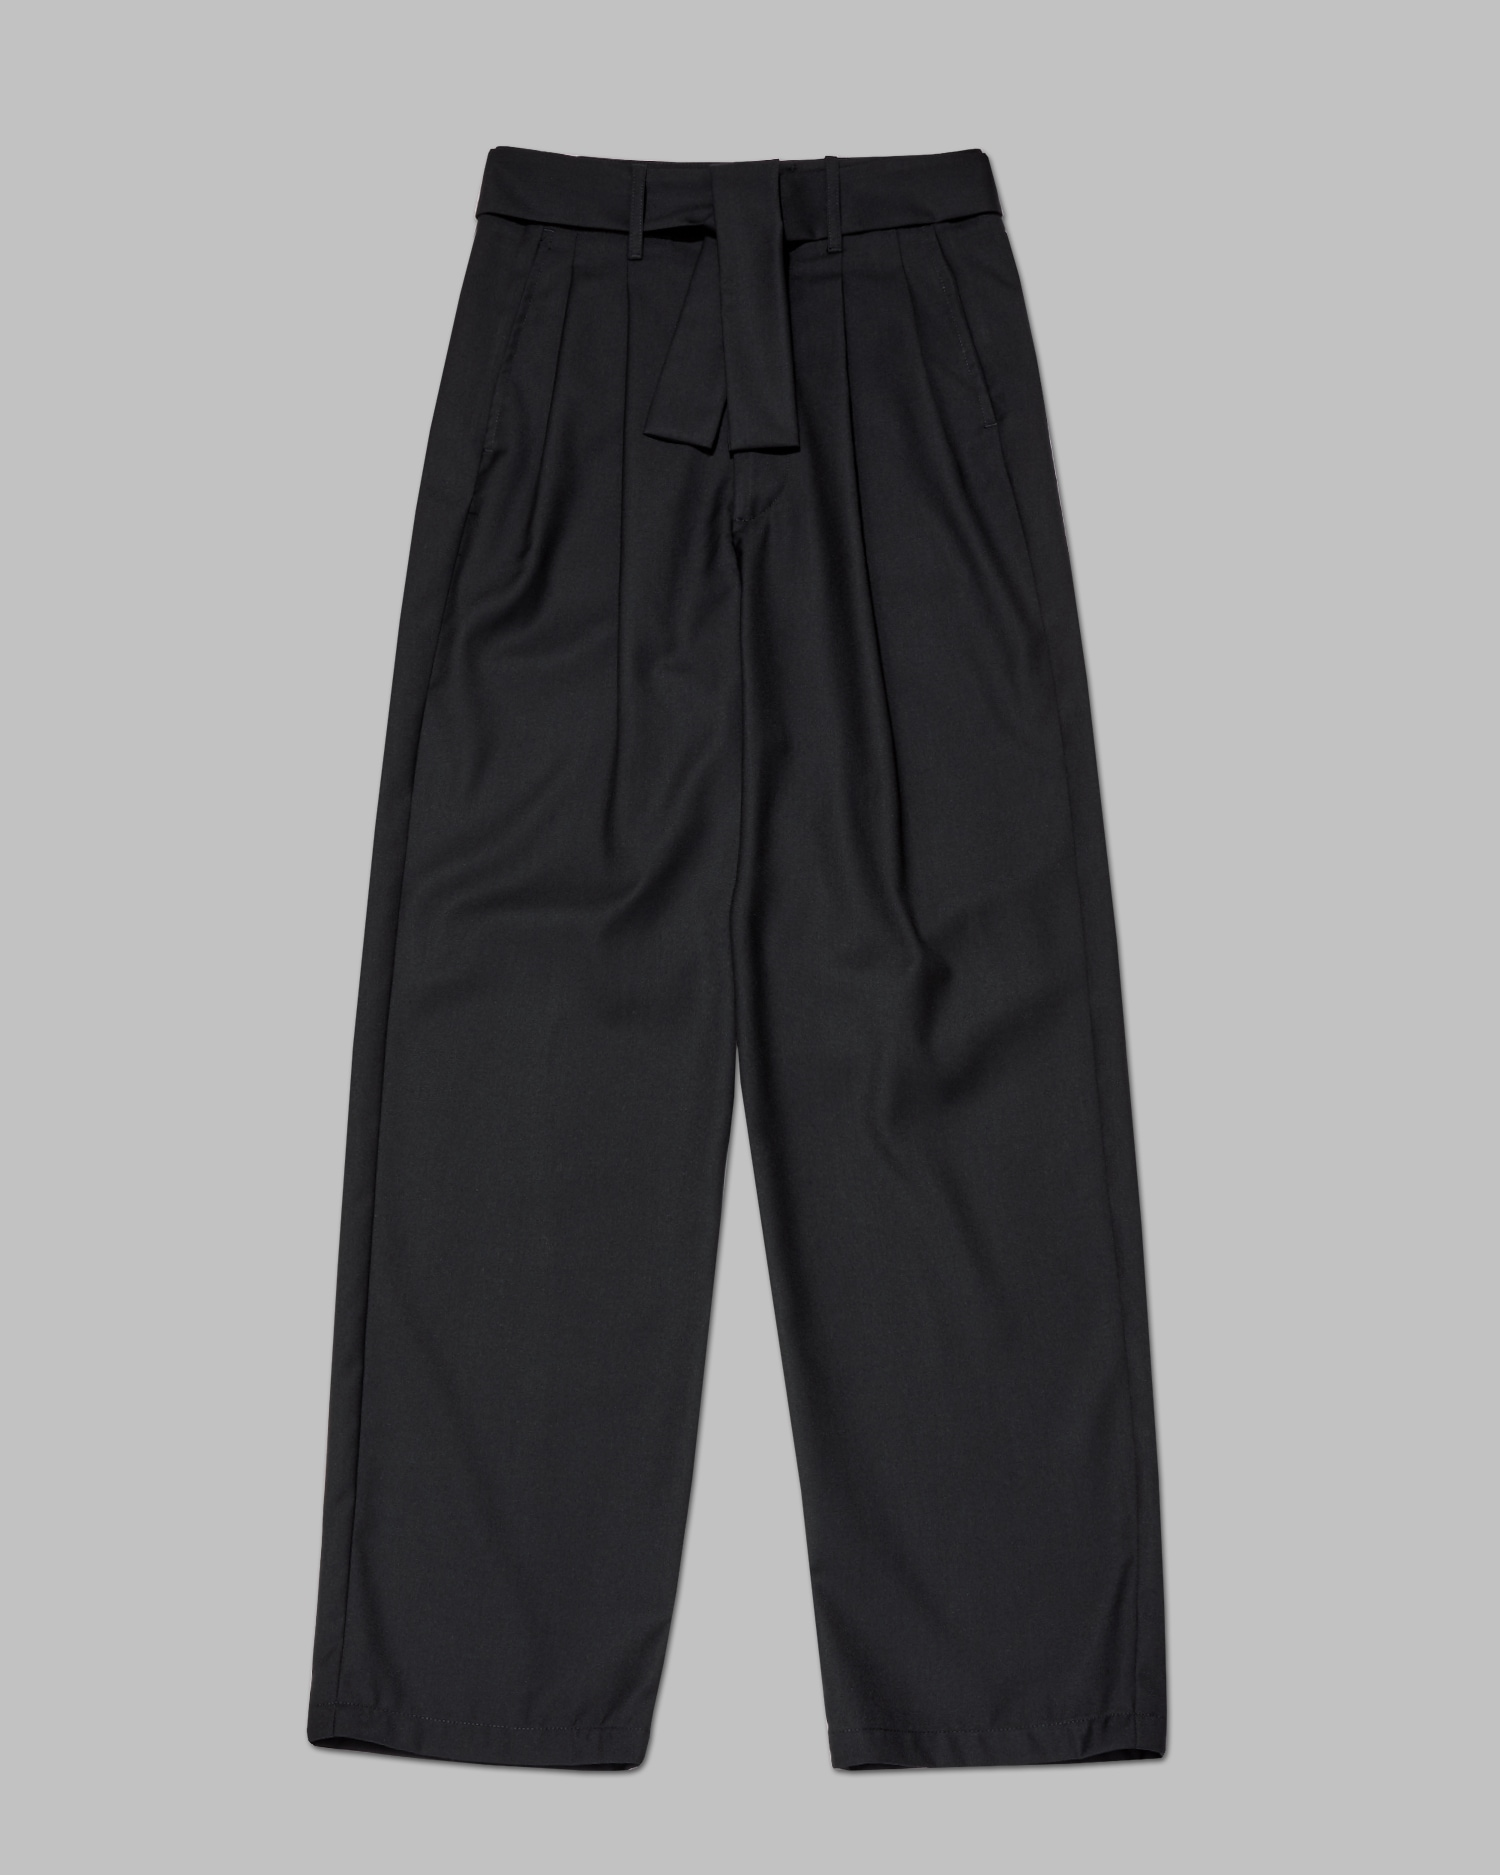 Best Wide Leg Pants For Women And Men